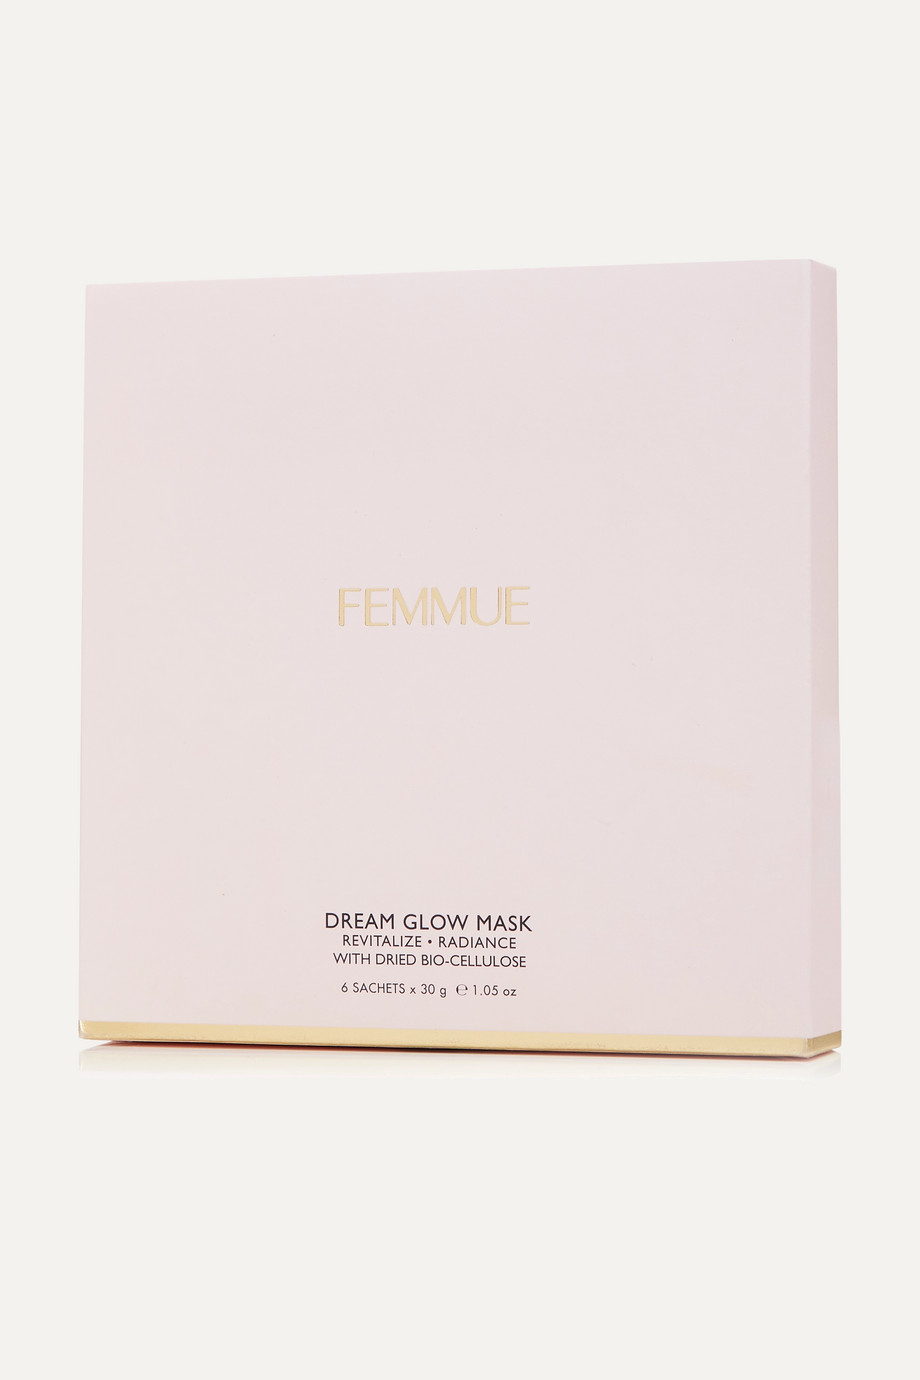 FEMMUE Dream Glow Revitalize and Radiance Mask x 6